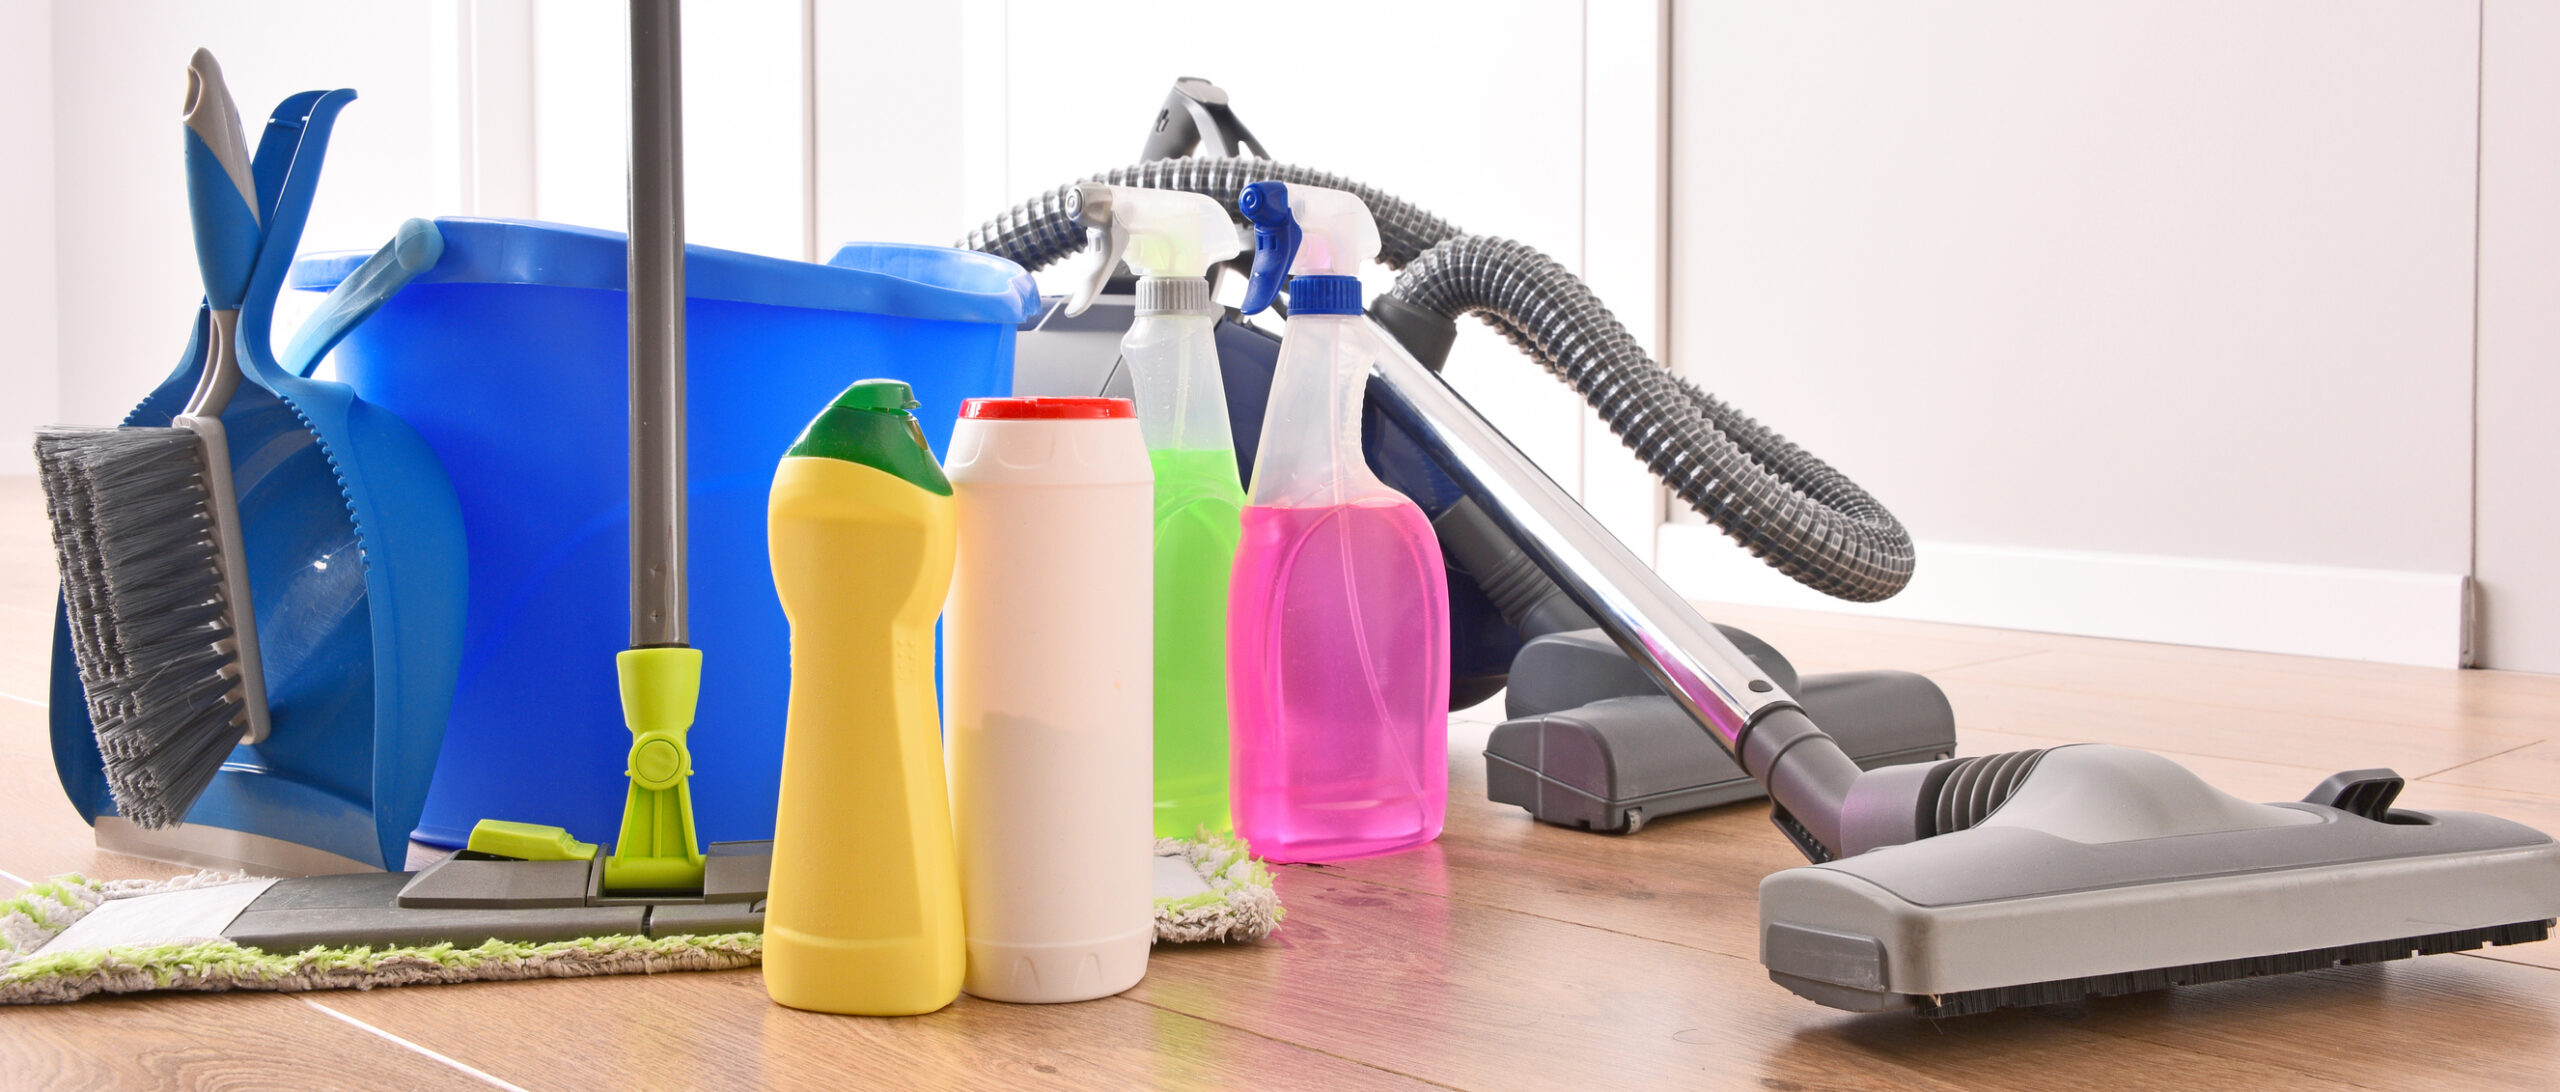 Burlington County Commercial Cleaning Service